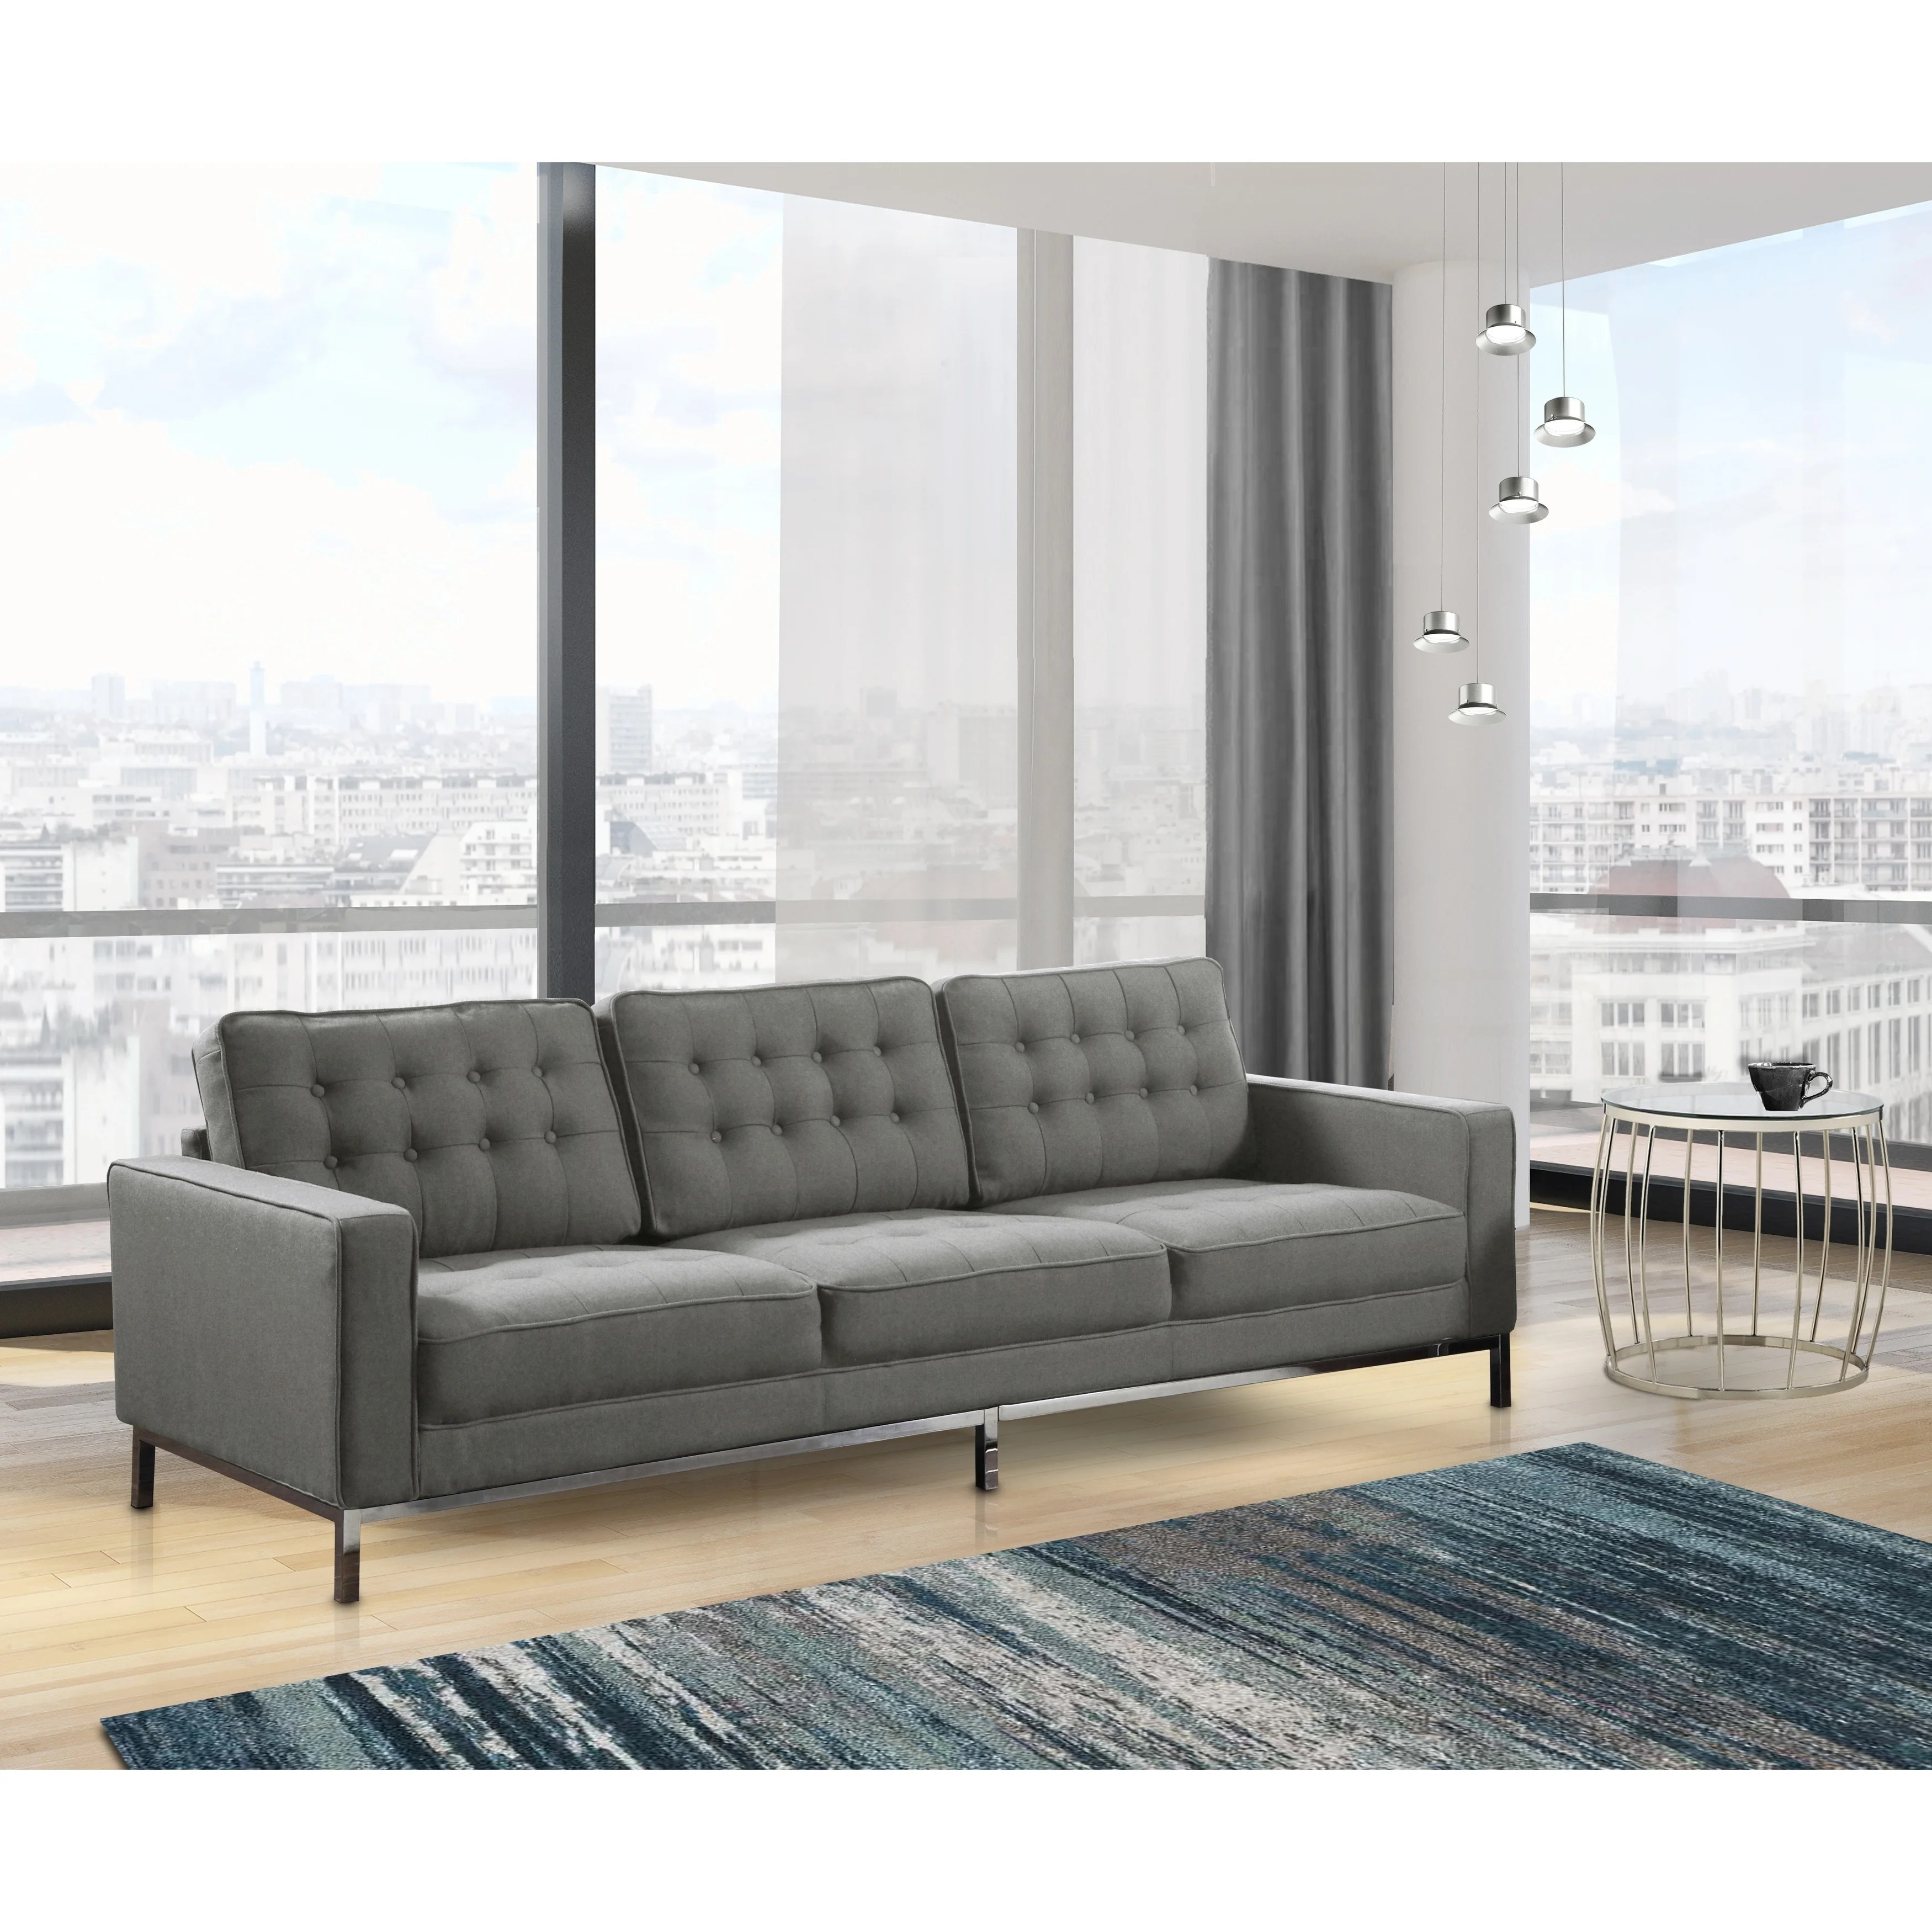 sterling sofa new dimension factory los angeles chic home linen upholstered ebay